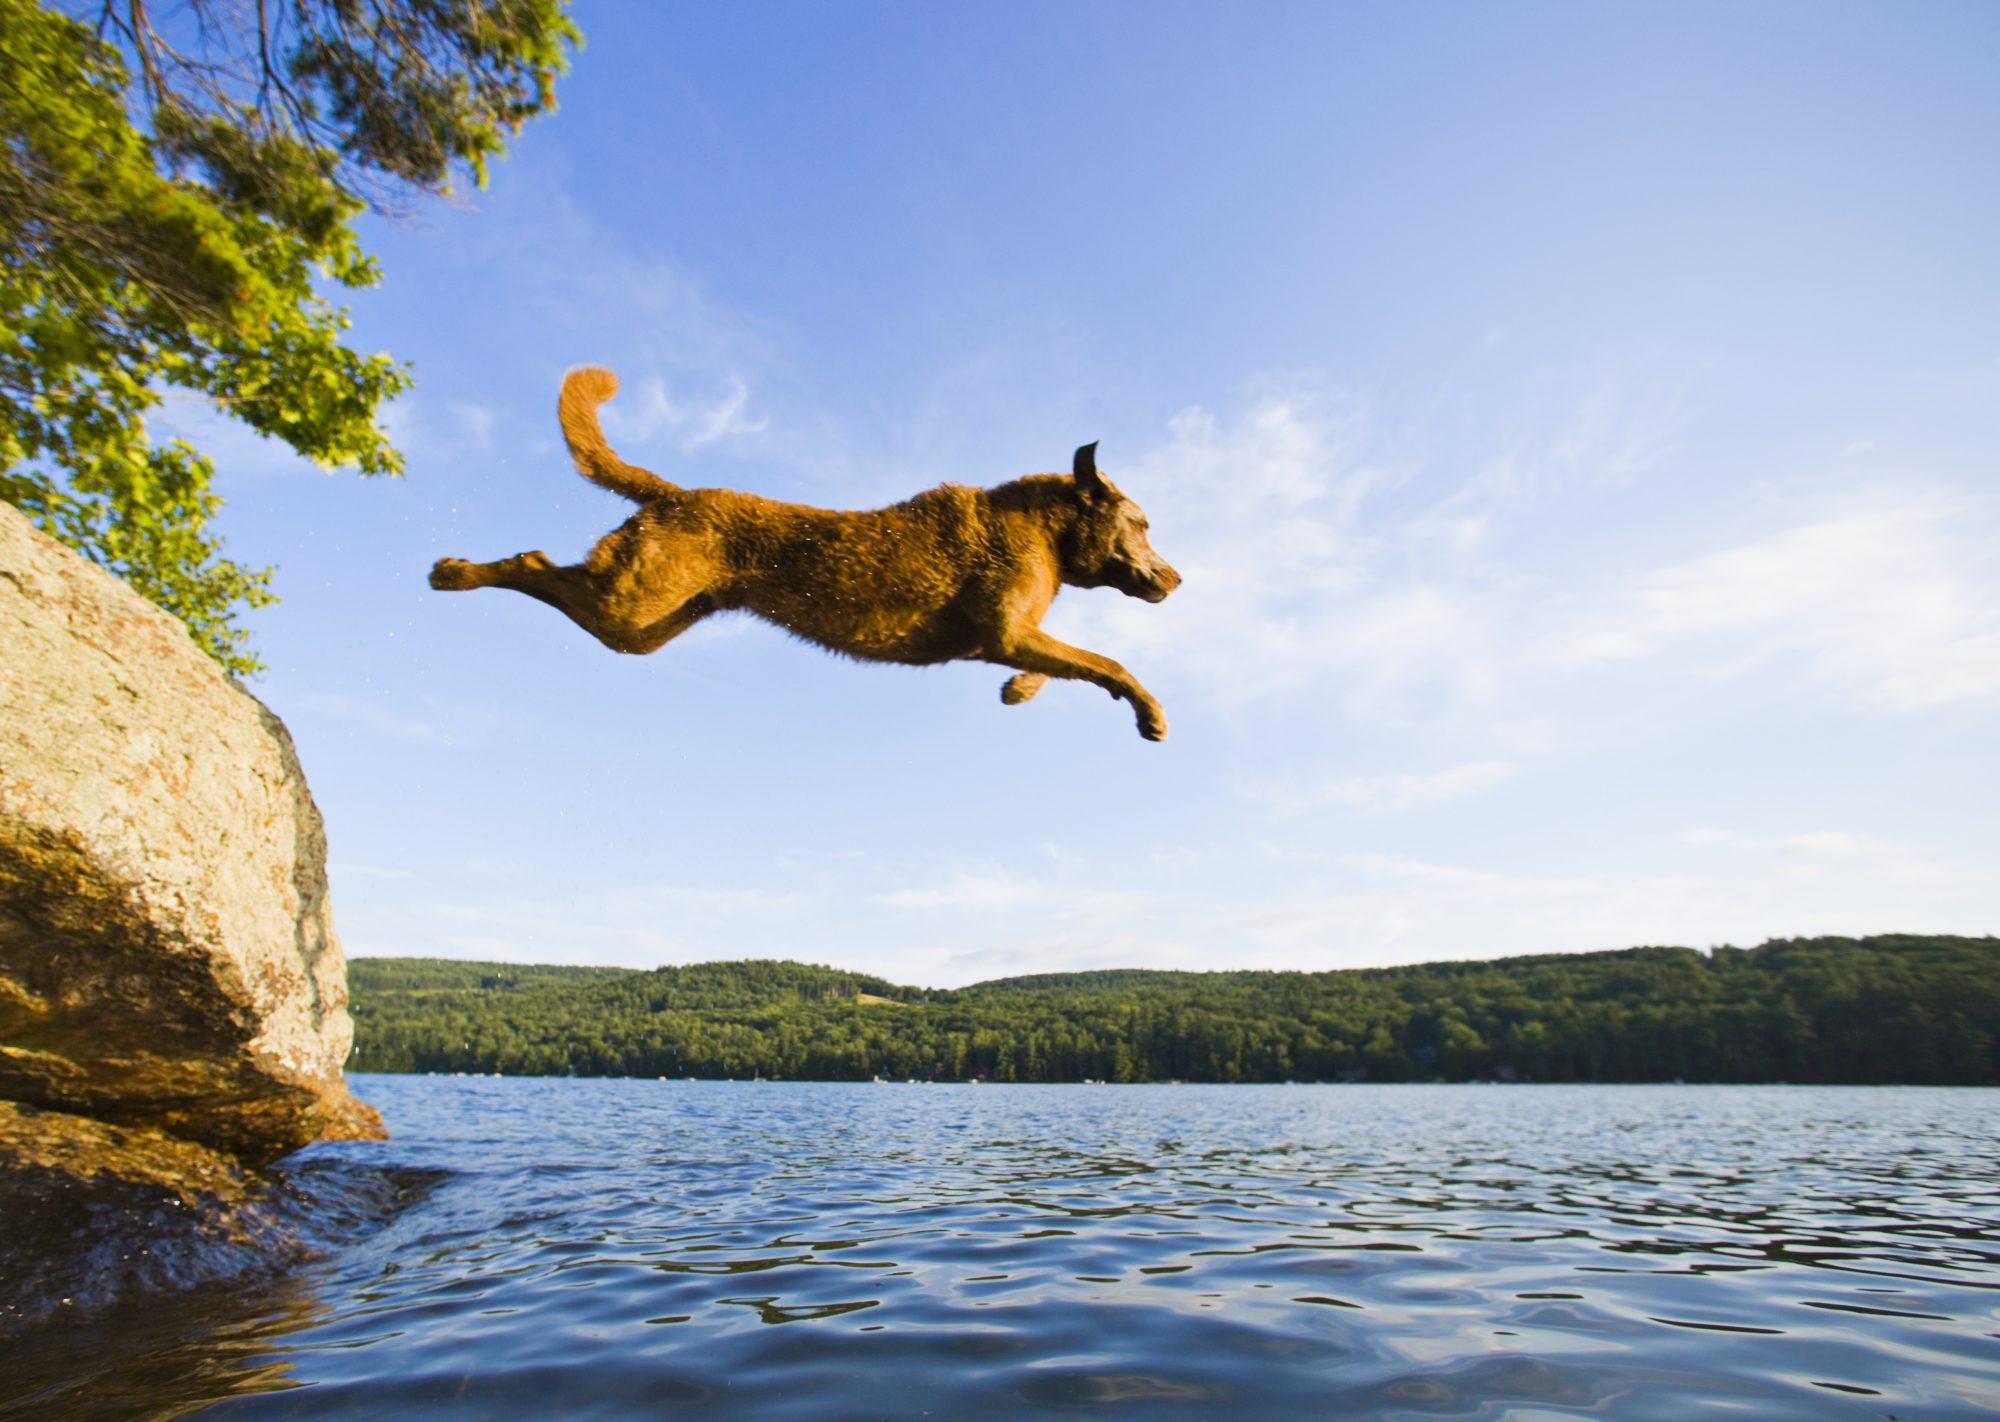 Chesapeake bay retriever jumping into lake